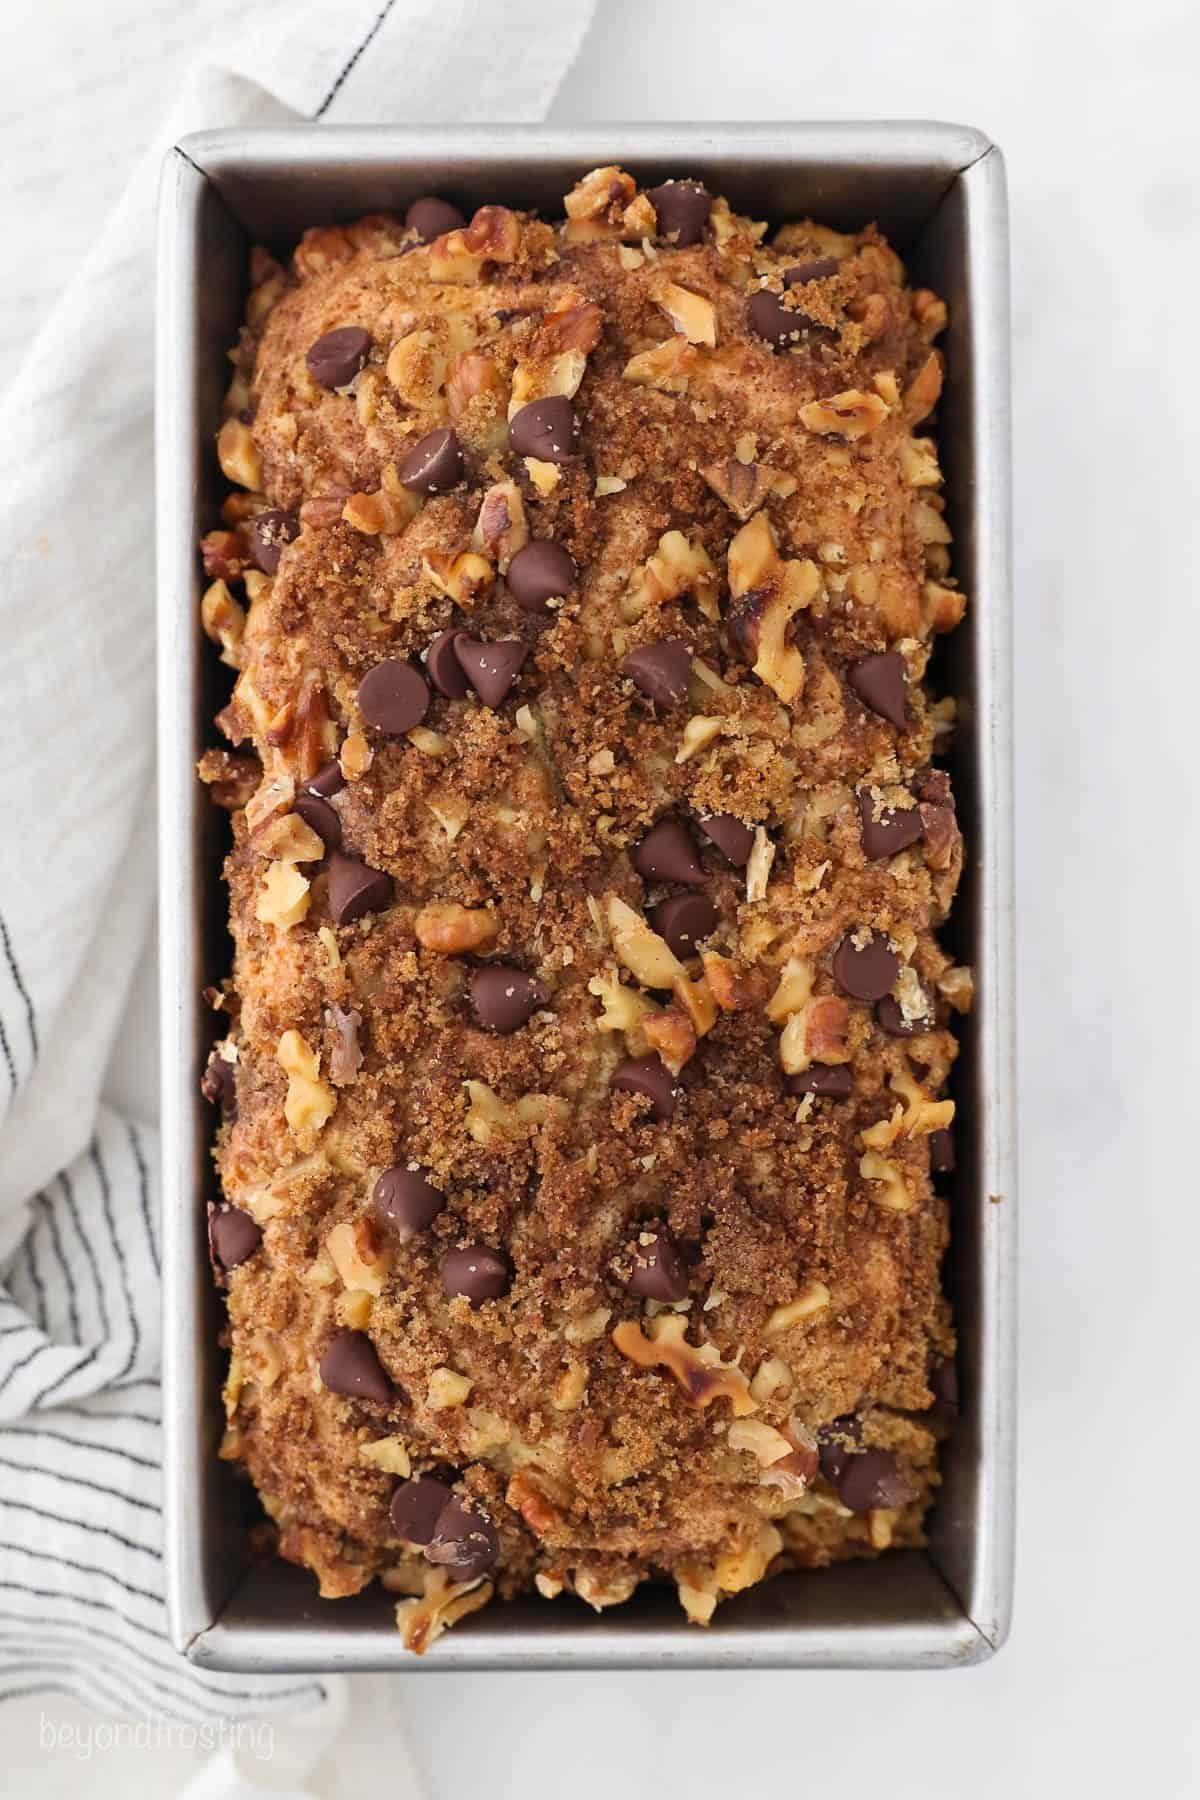 Freshly baked coffee cake topped with nuts and chocolate